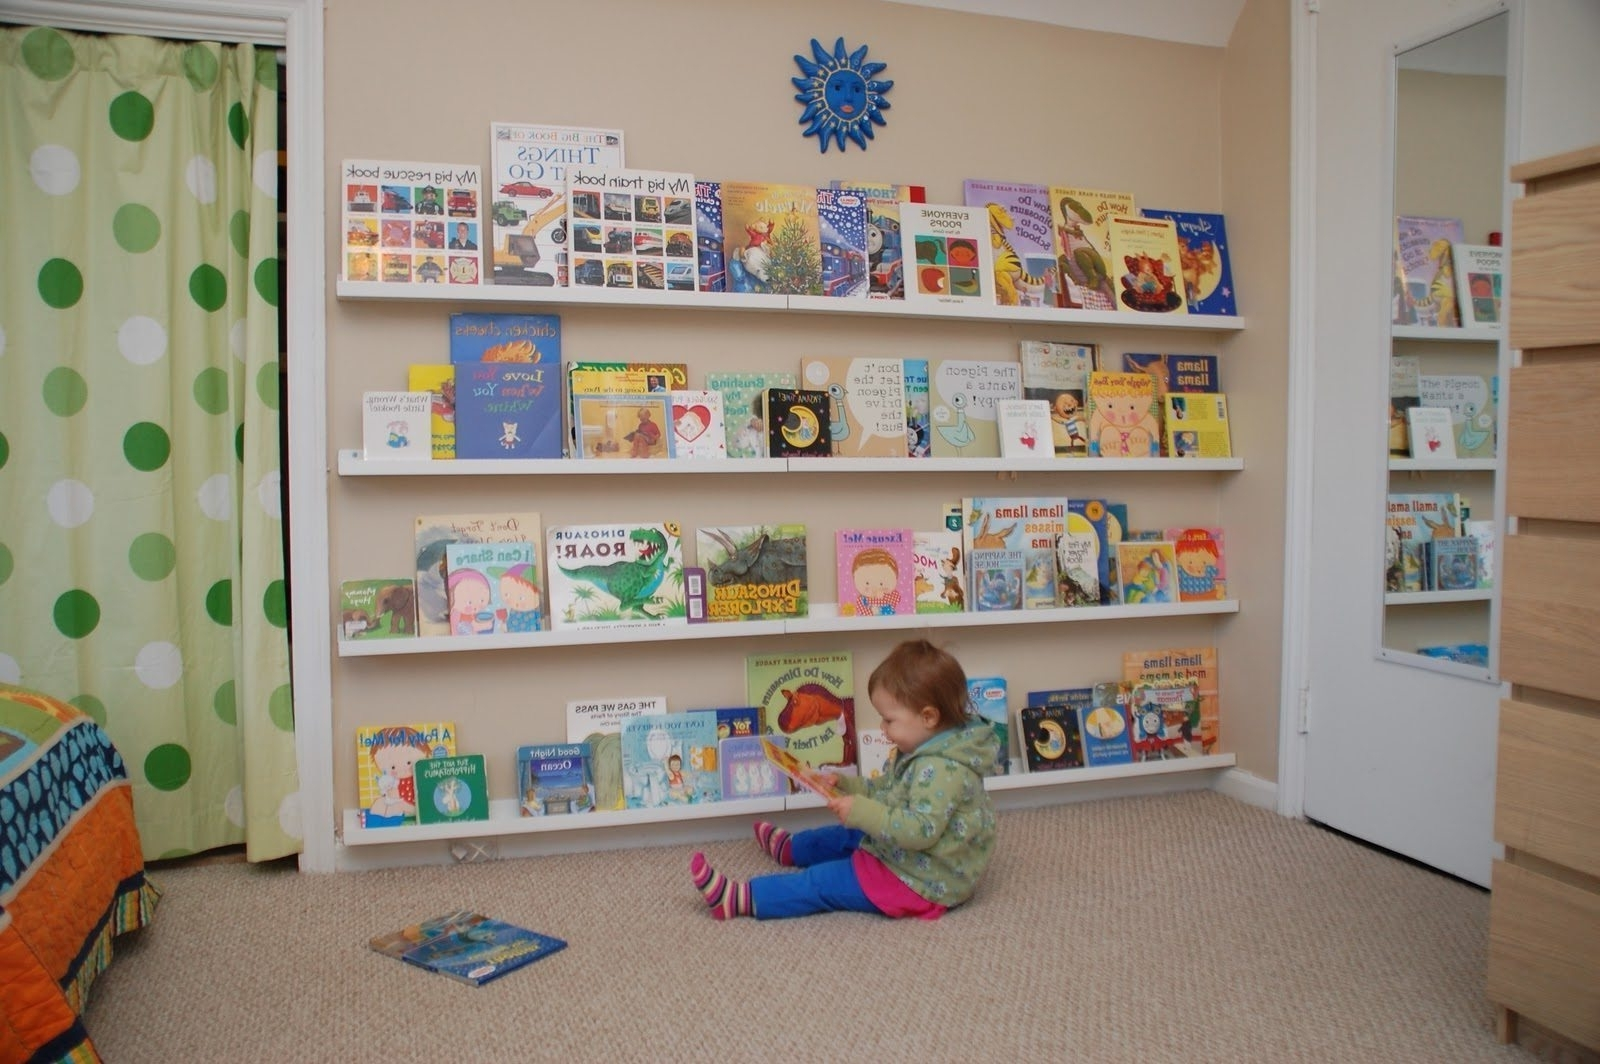 Popular 29 Bookcase Ideas For Kids, 10 Writing Prompt Ideas For Kids My With Regard To Bookcases For Kids Room (View 14 of 15)